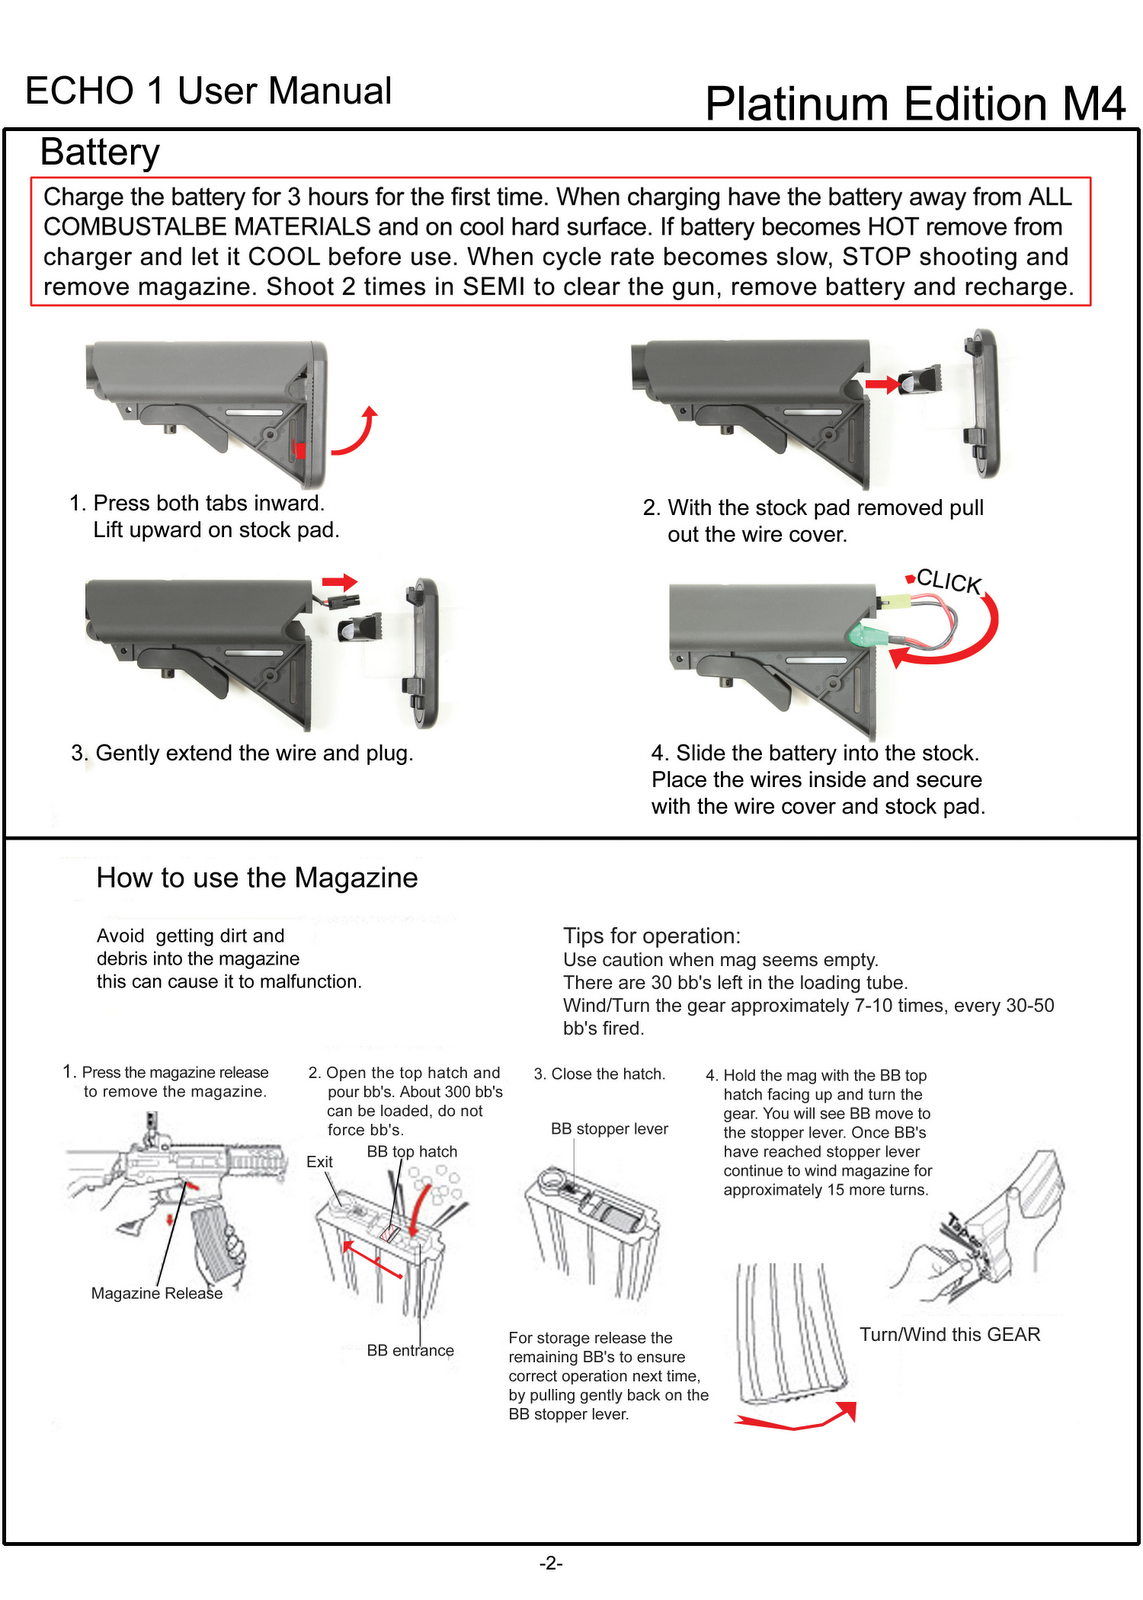 Pyramyd Airsoft Blog Review Echo1 Platinum M4 Aeg Part I Gun Diagrams 1911 Mil Spec Free Download Wiring Pictures For Those Of You That Are Unfamiliar With The Intended Effect Hop Up On A Bb Has Drawn Pretty Good Diagram Below As Well Clear